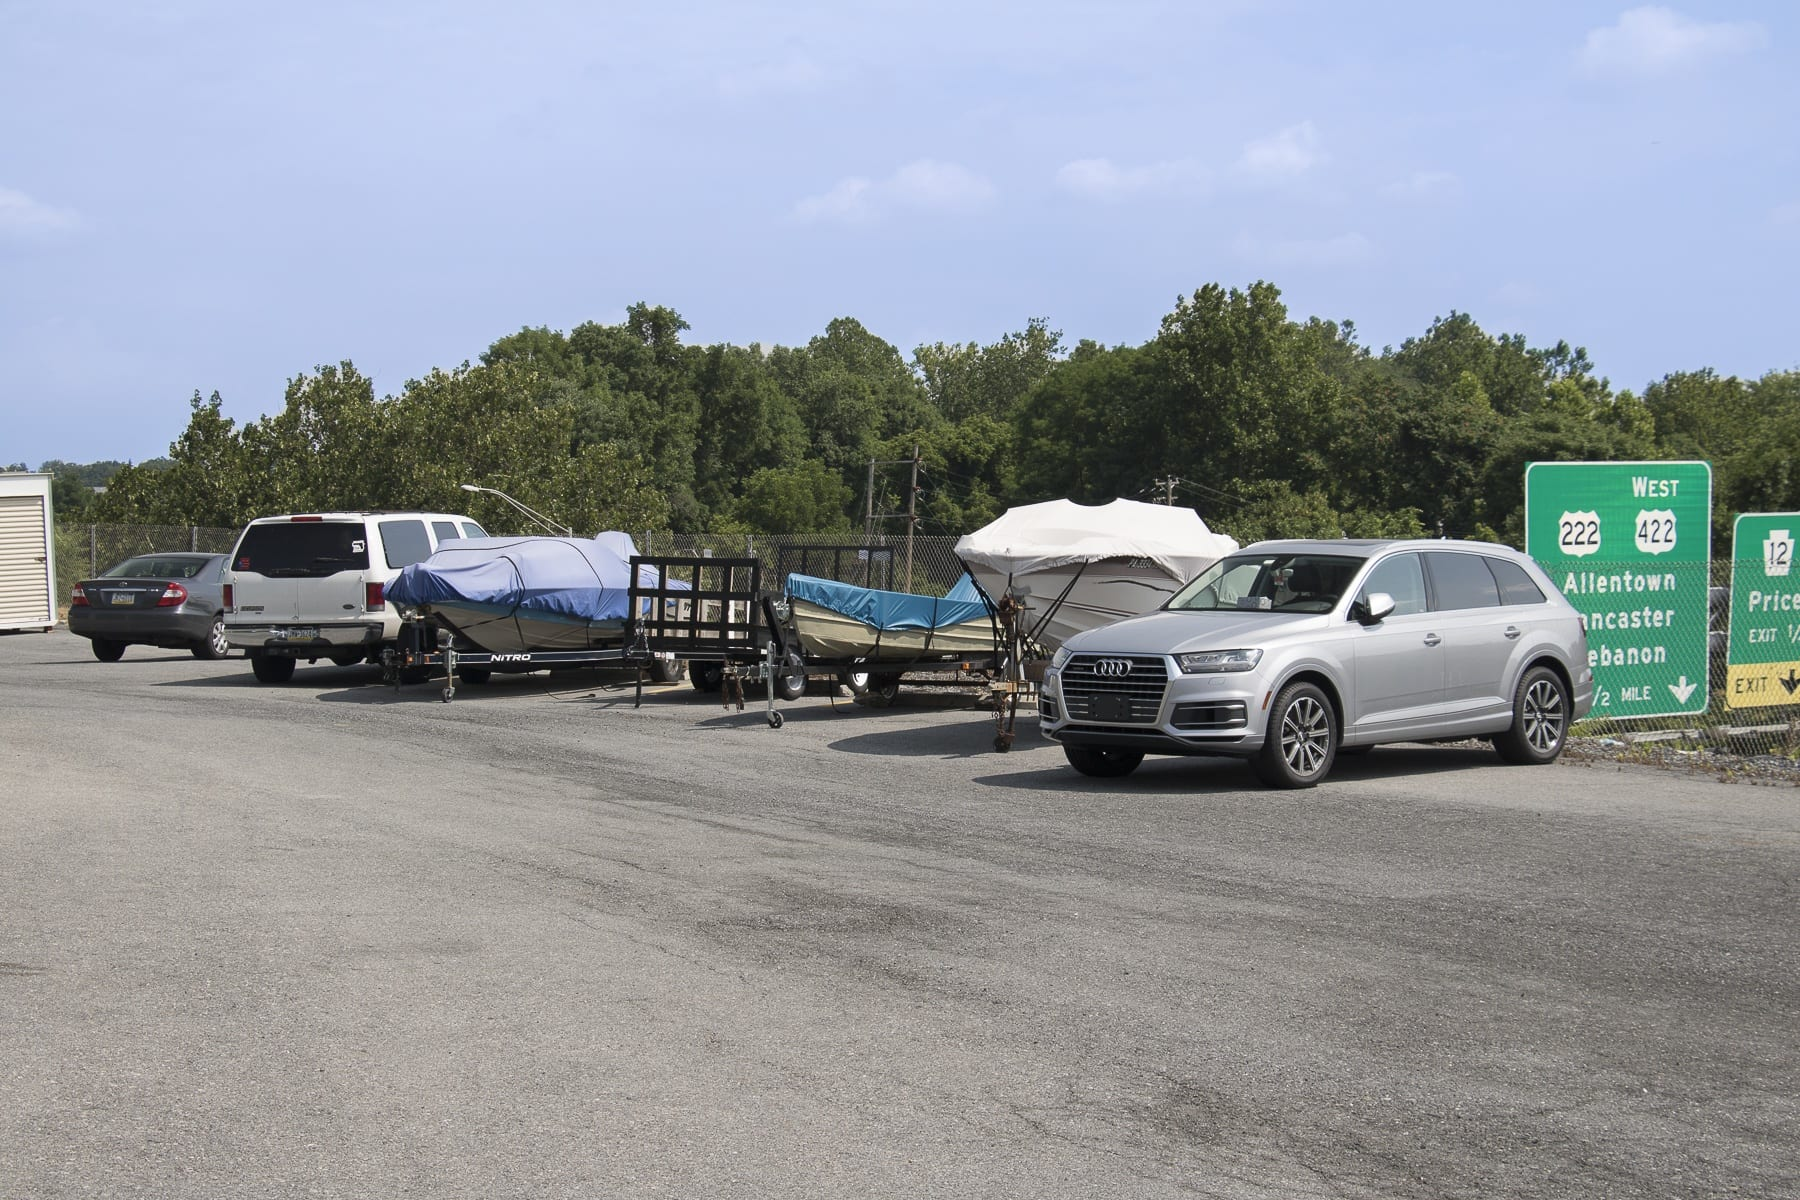 Vehicle & Boat storage in Reading PA